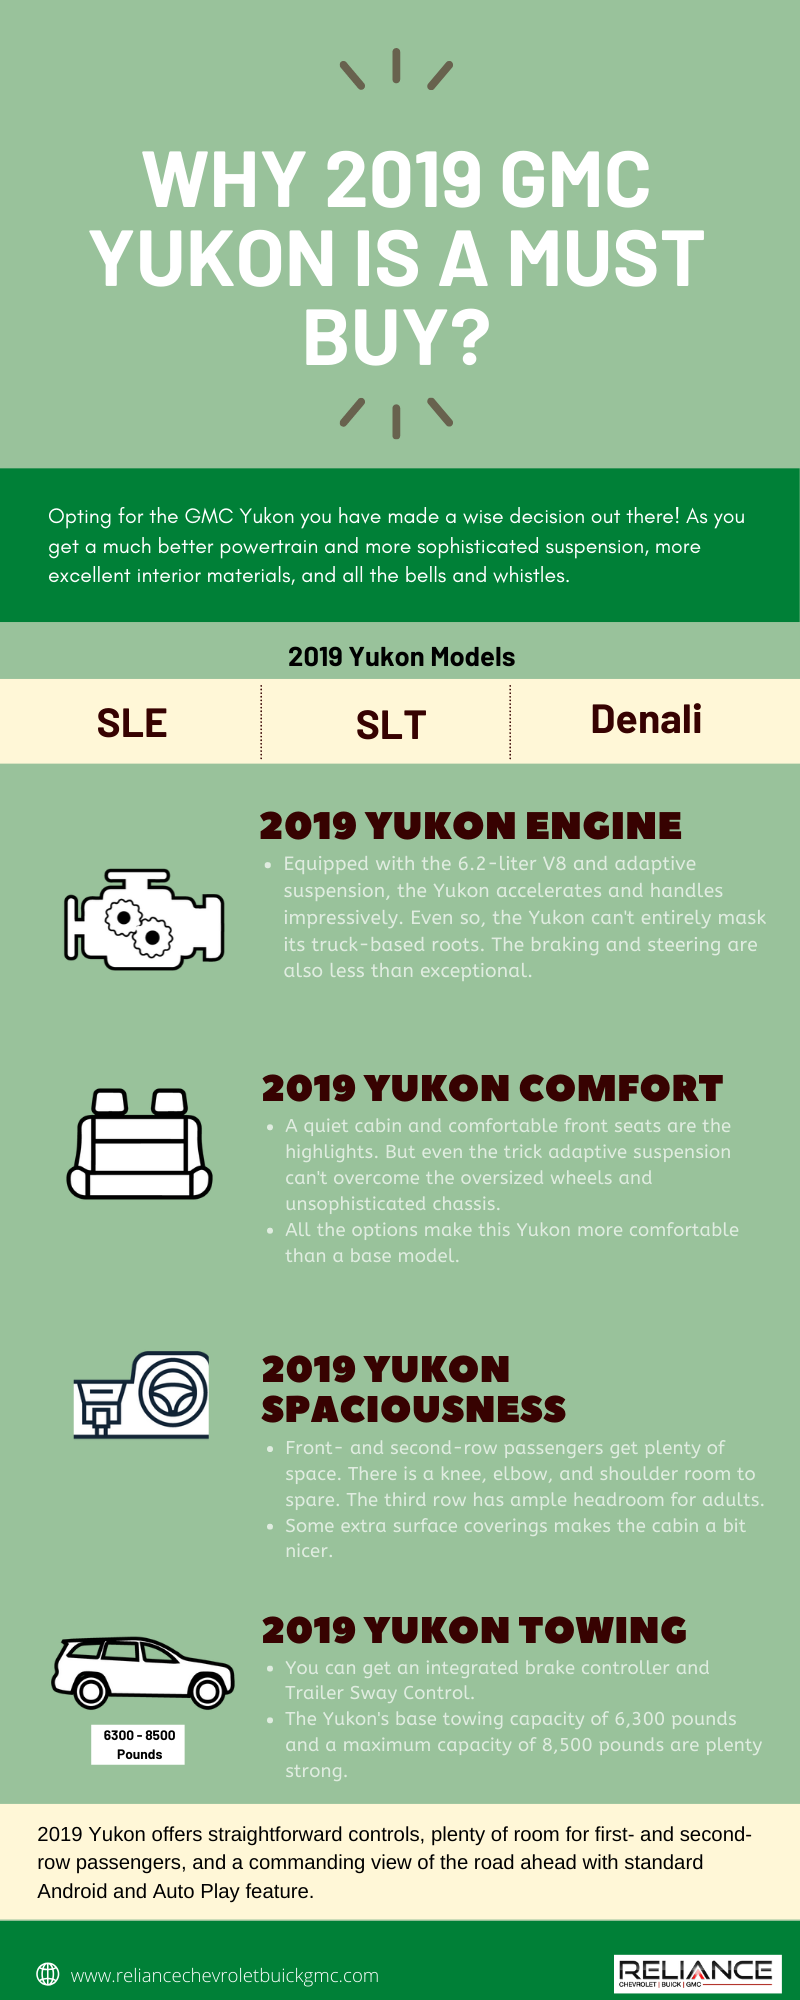 Why 2019 GMC Is A Must Buy - Infographic